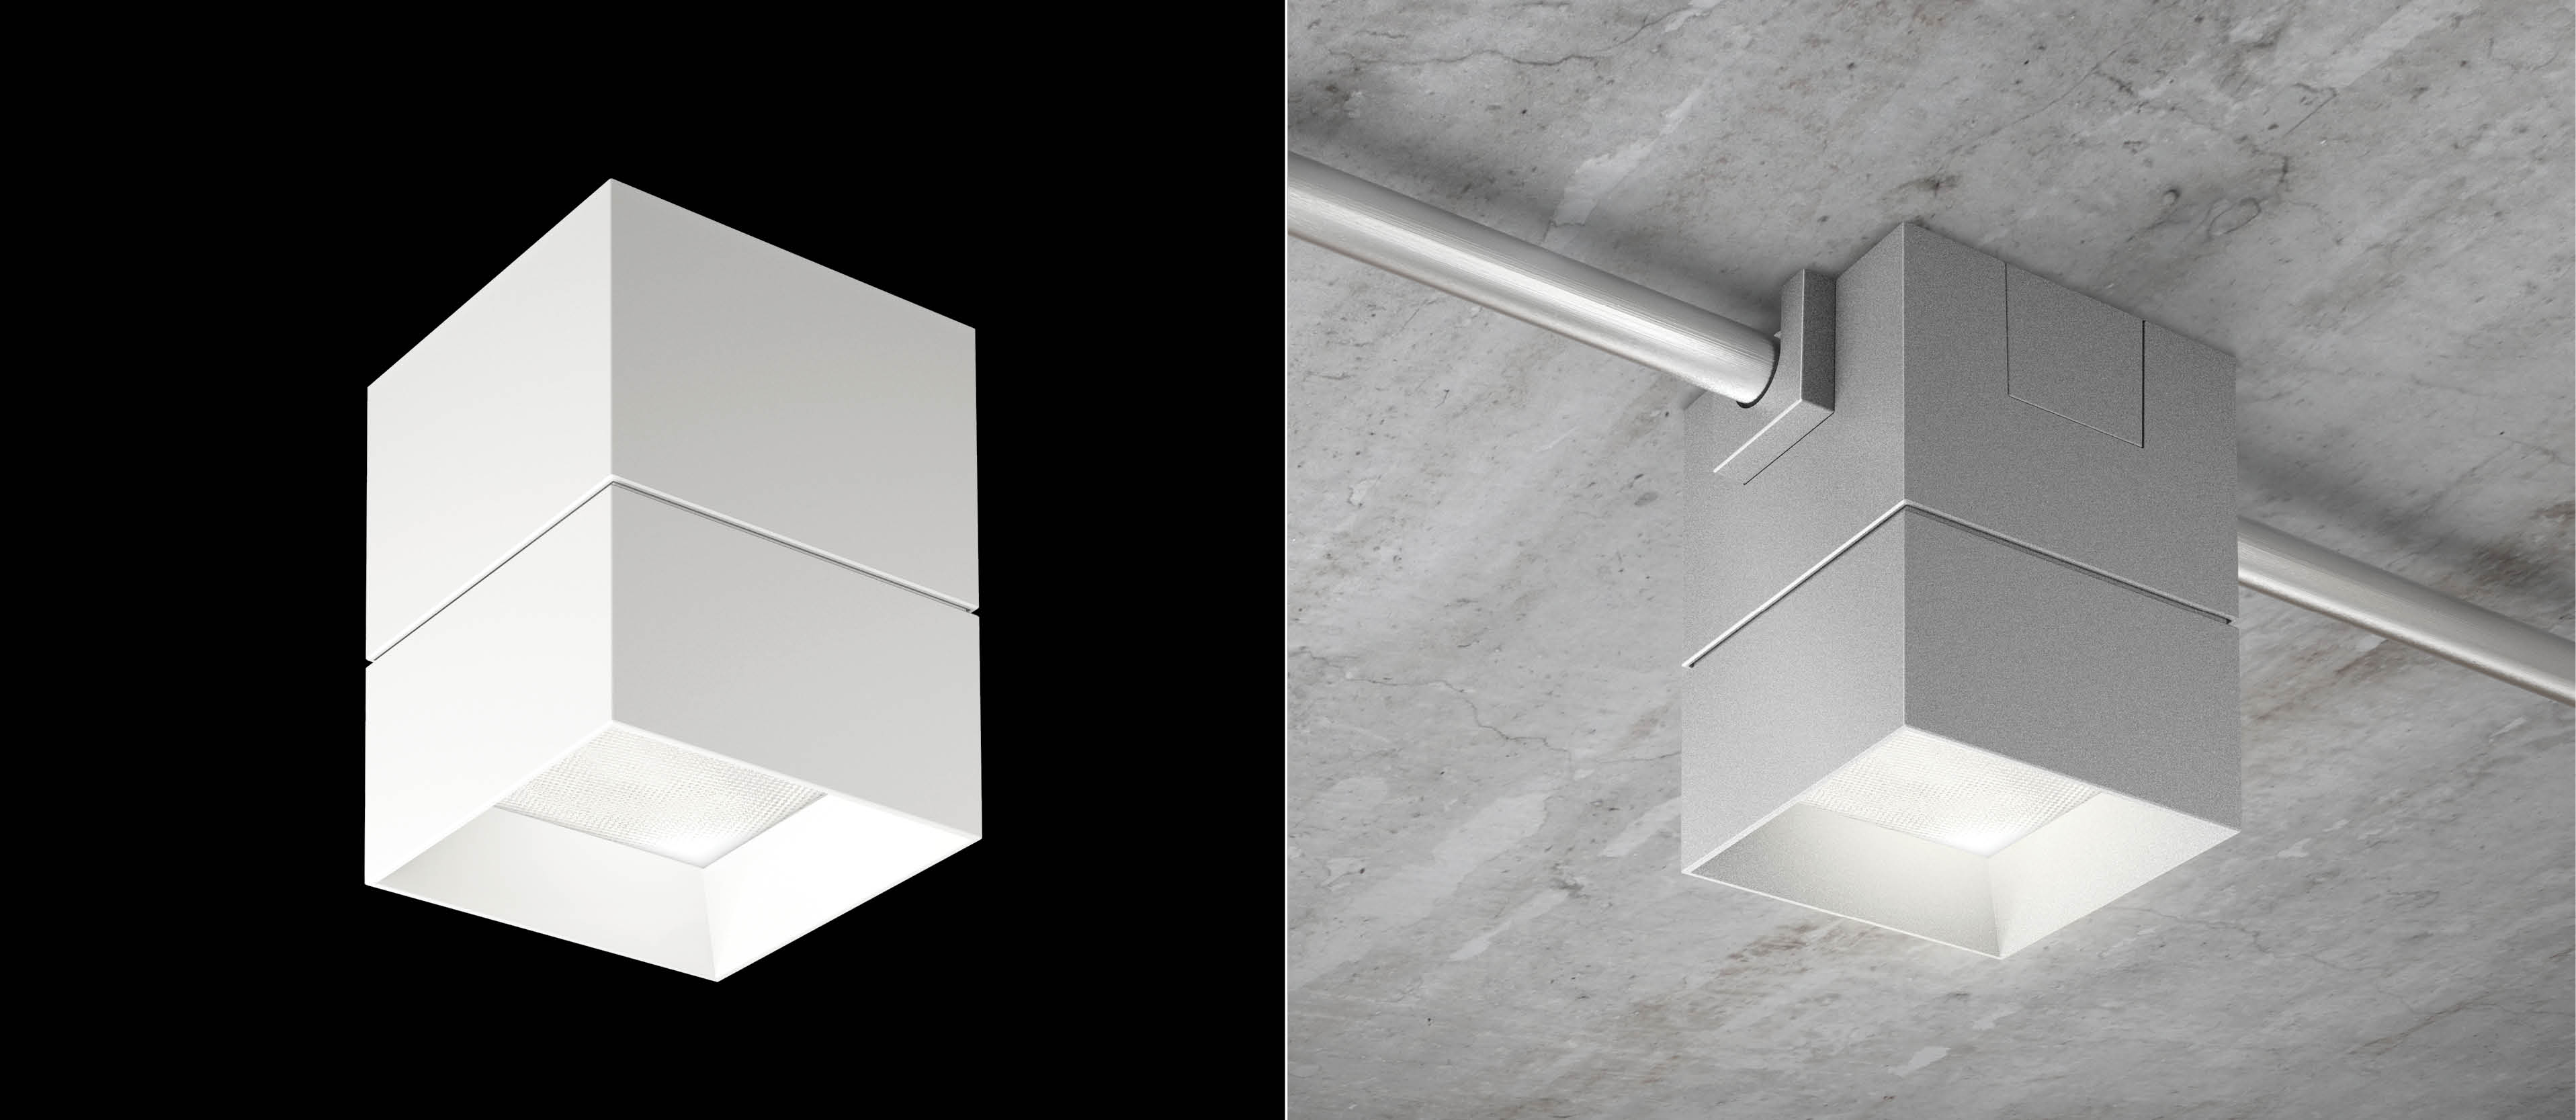 Beveled Block Is A 5 X Geometric Light Fixture Specifically Designed For Use With Surface Mounted Conduit And Junction Bo In Exposed Or